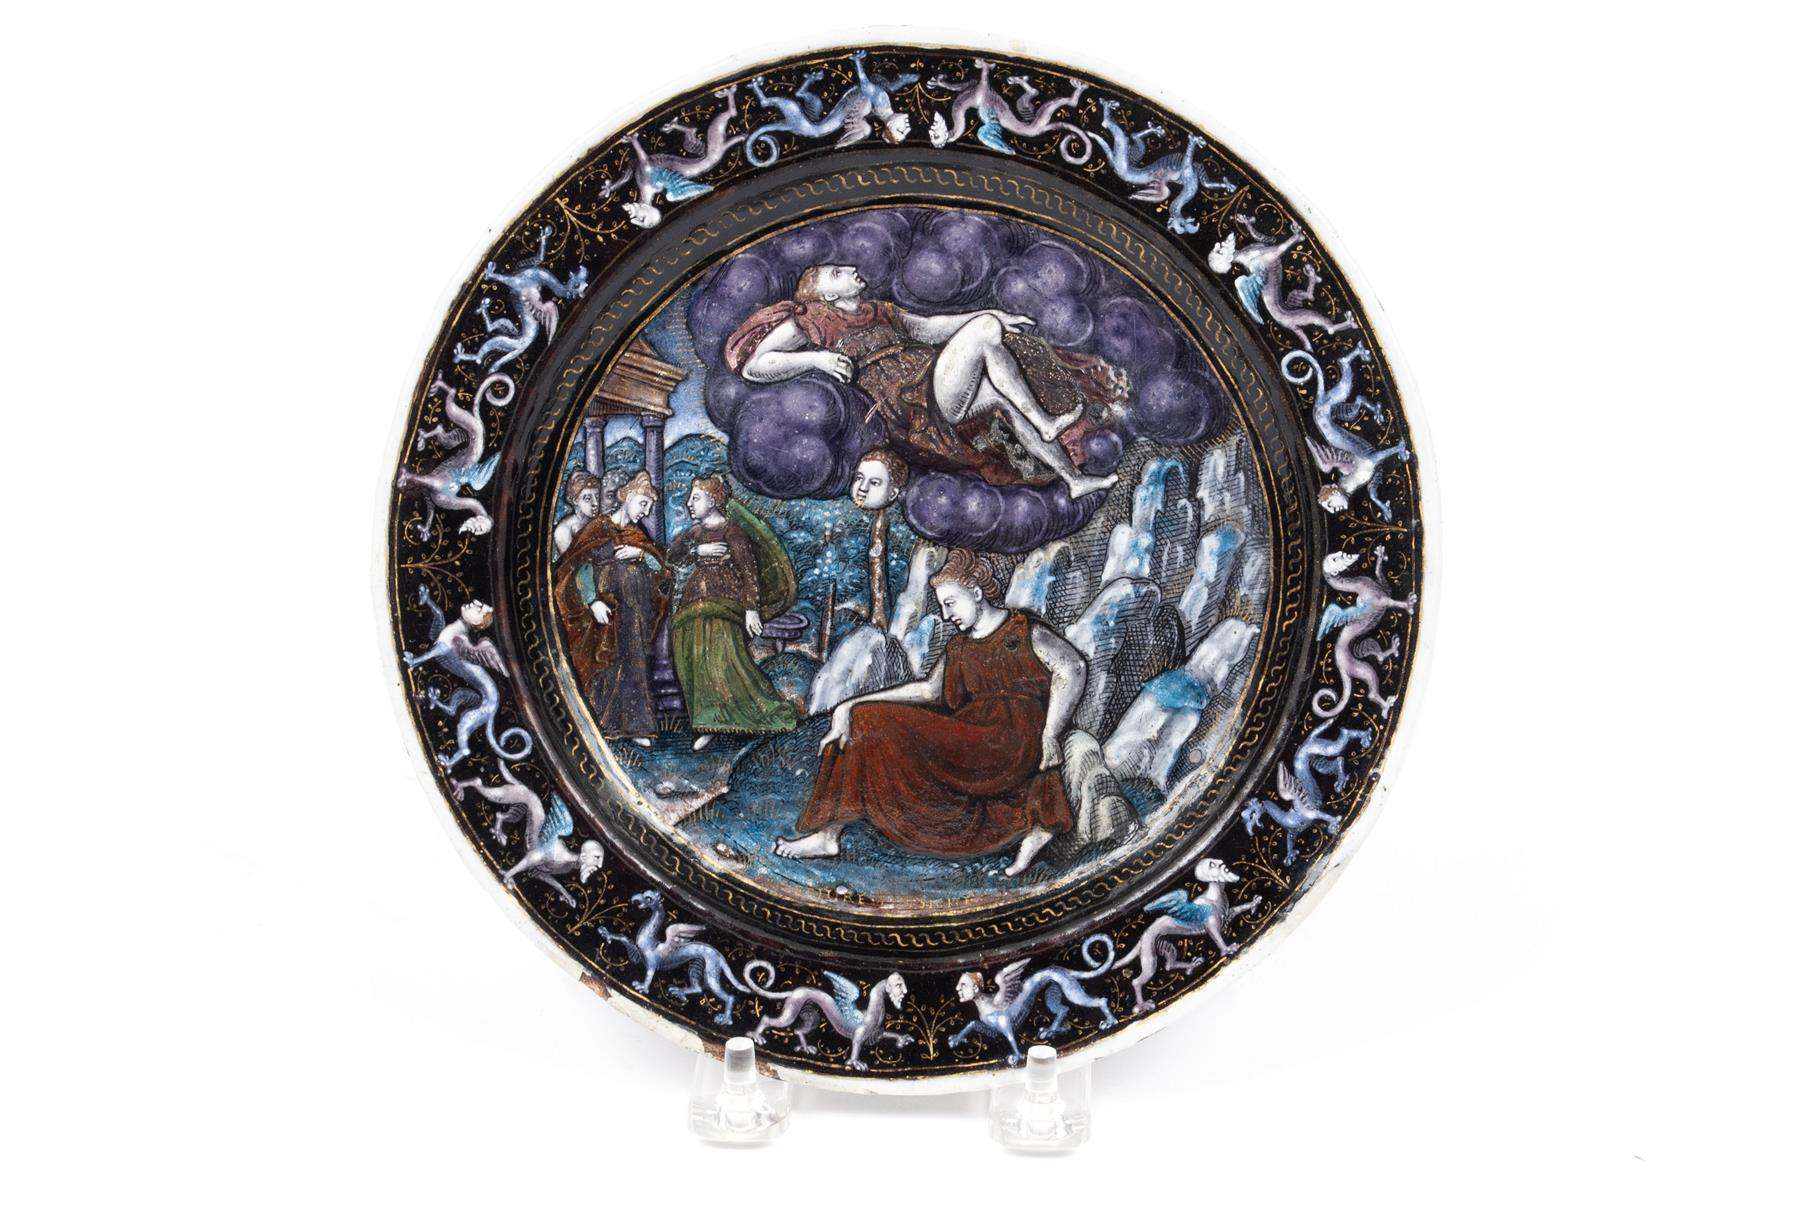 FRENCH POLYCHROME ENAMEL PLATE OF PSYCHE AND ZEPHYRE